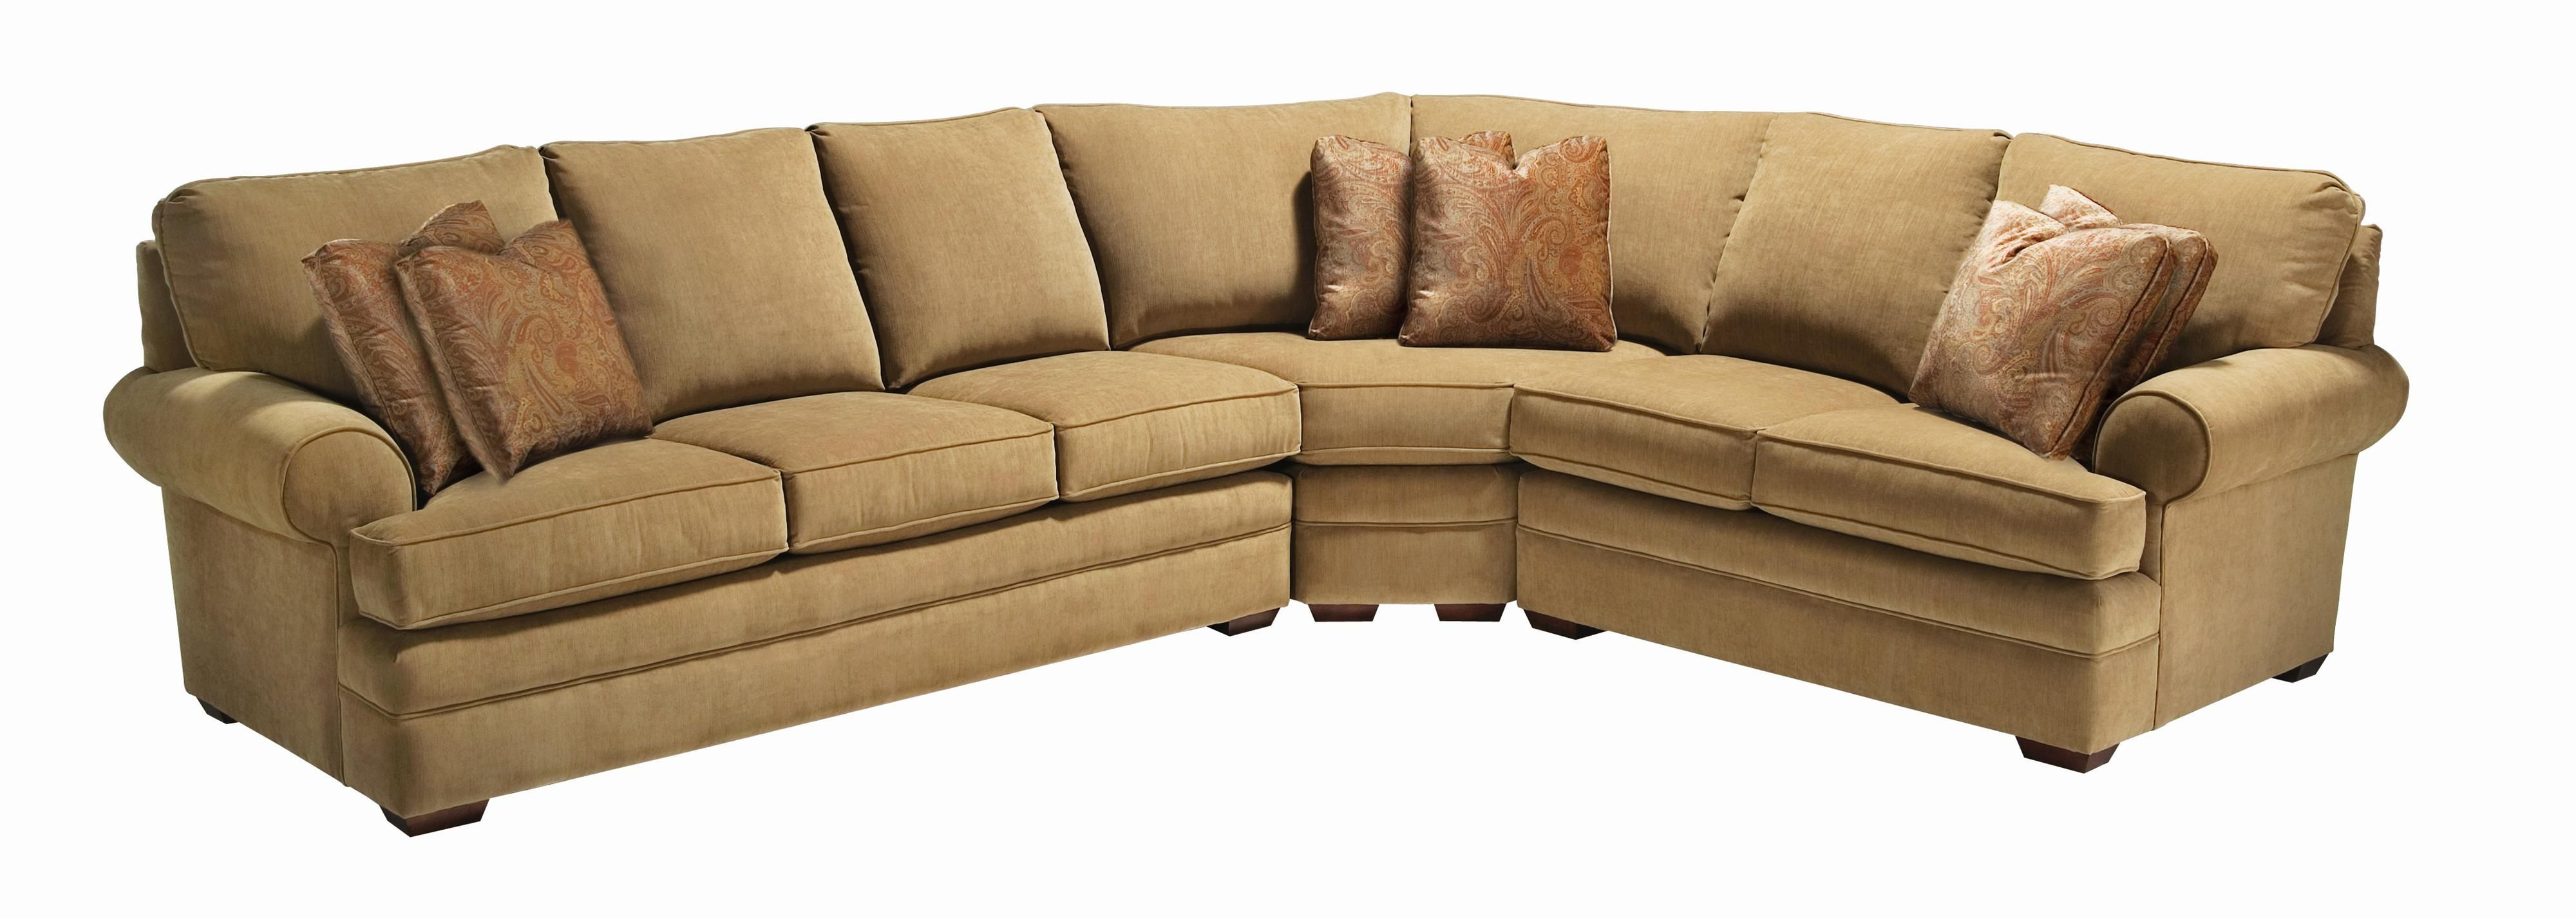 custom select upholstery custom 3 piece sectional sofa by kinc rh pinterest com